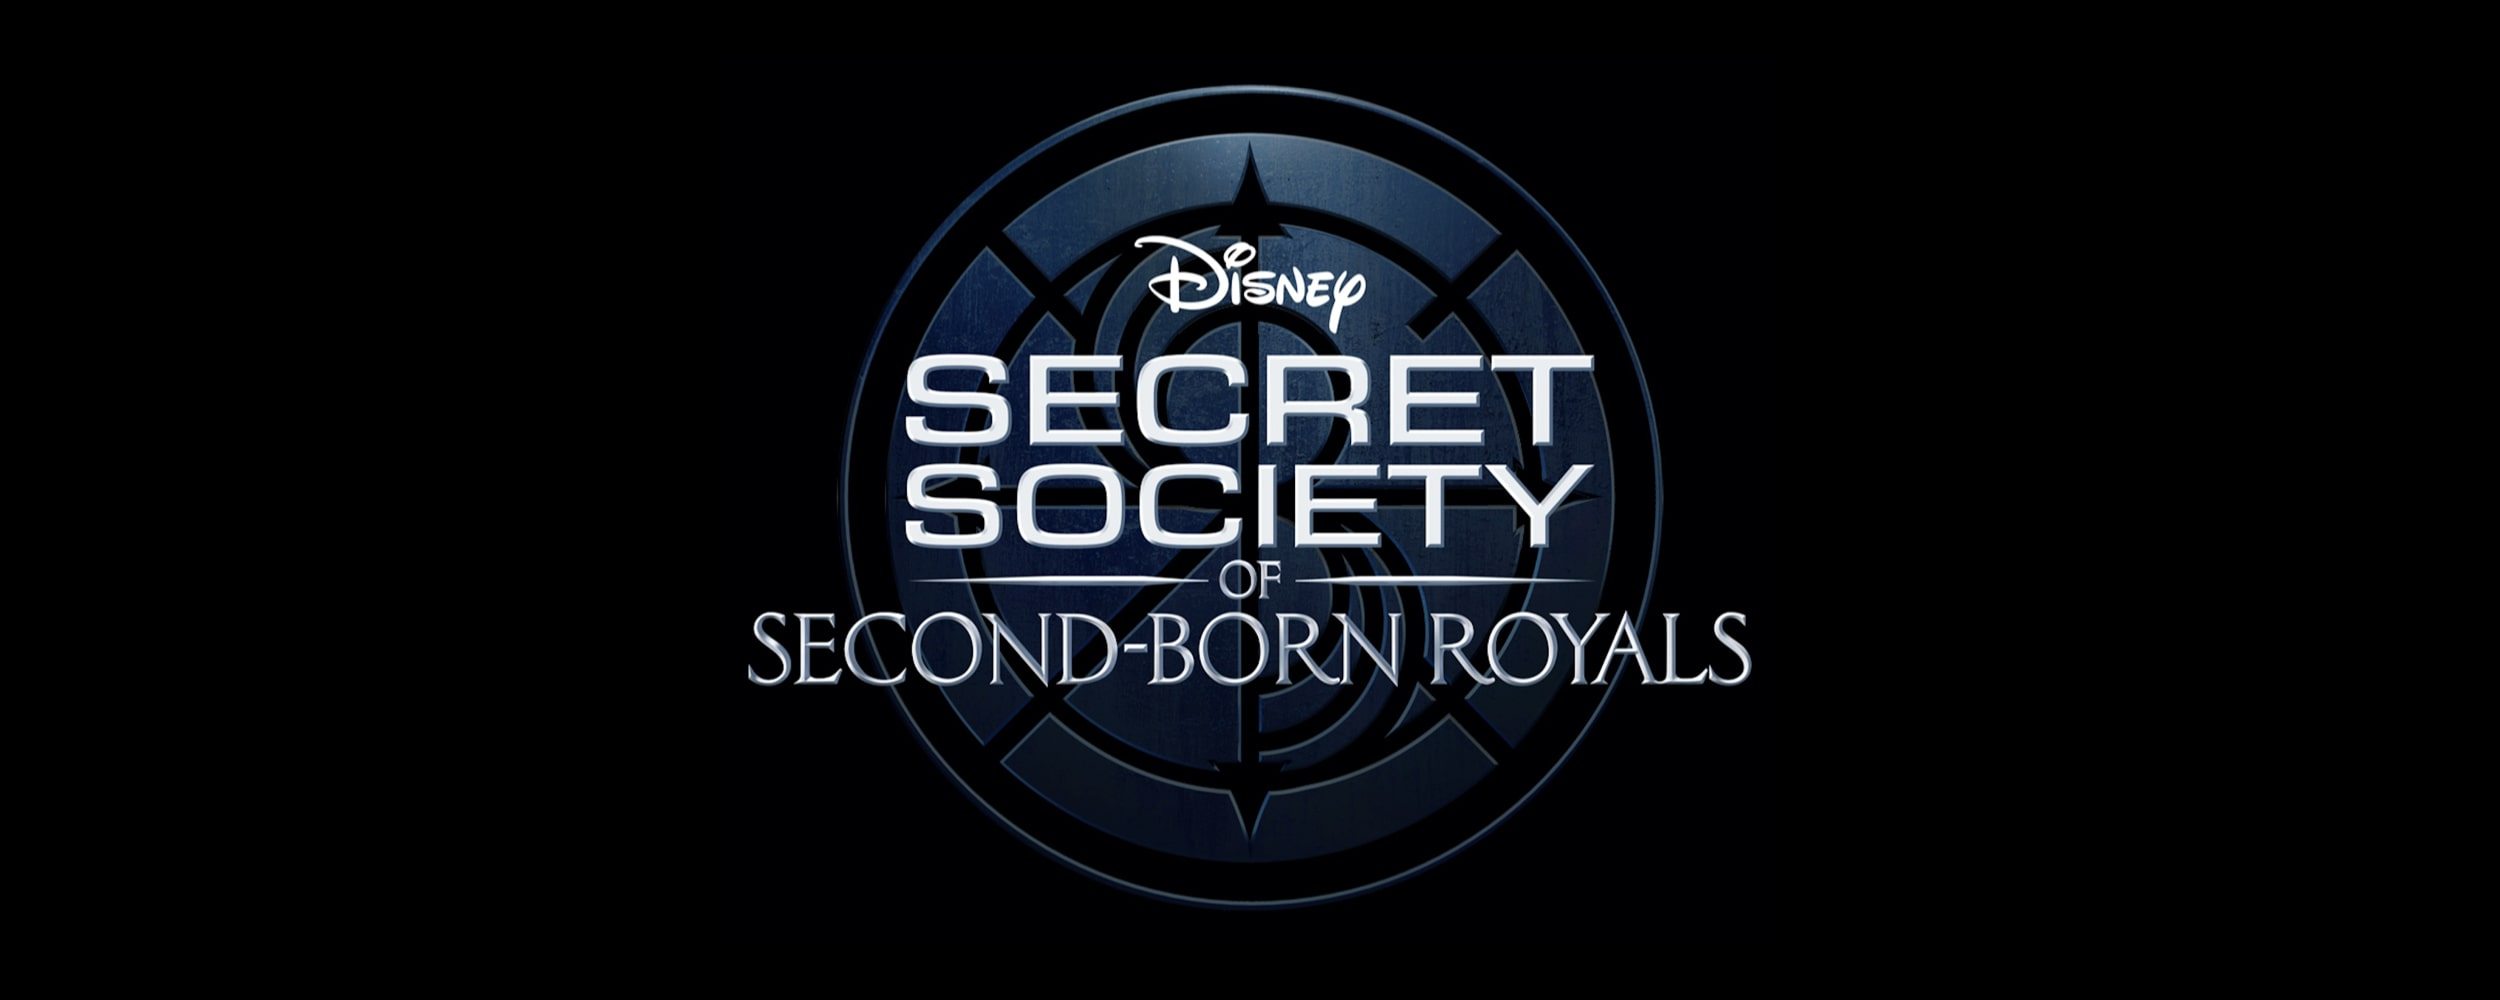 Secret Society of Second-Born Royals Media Kit